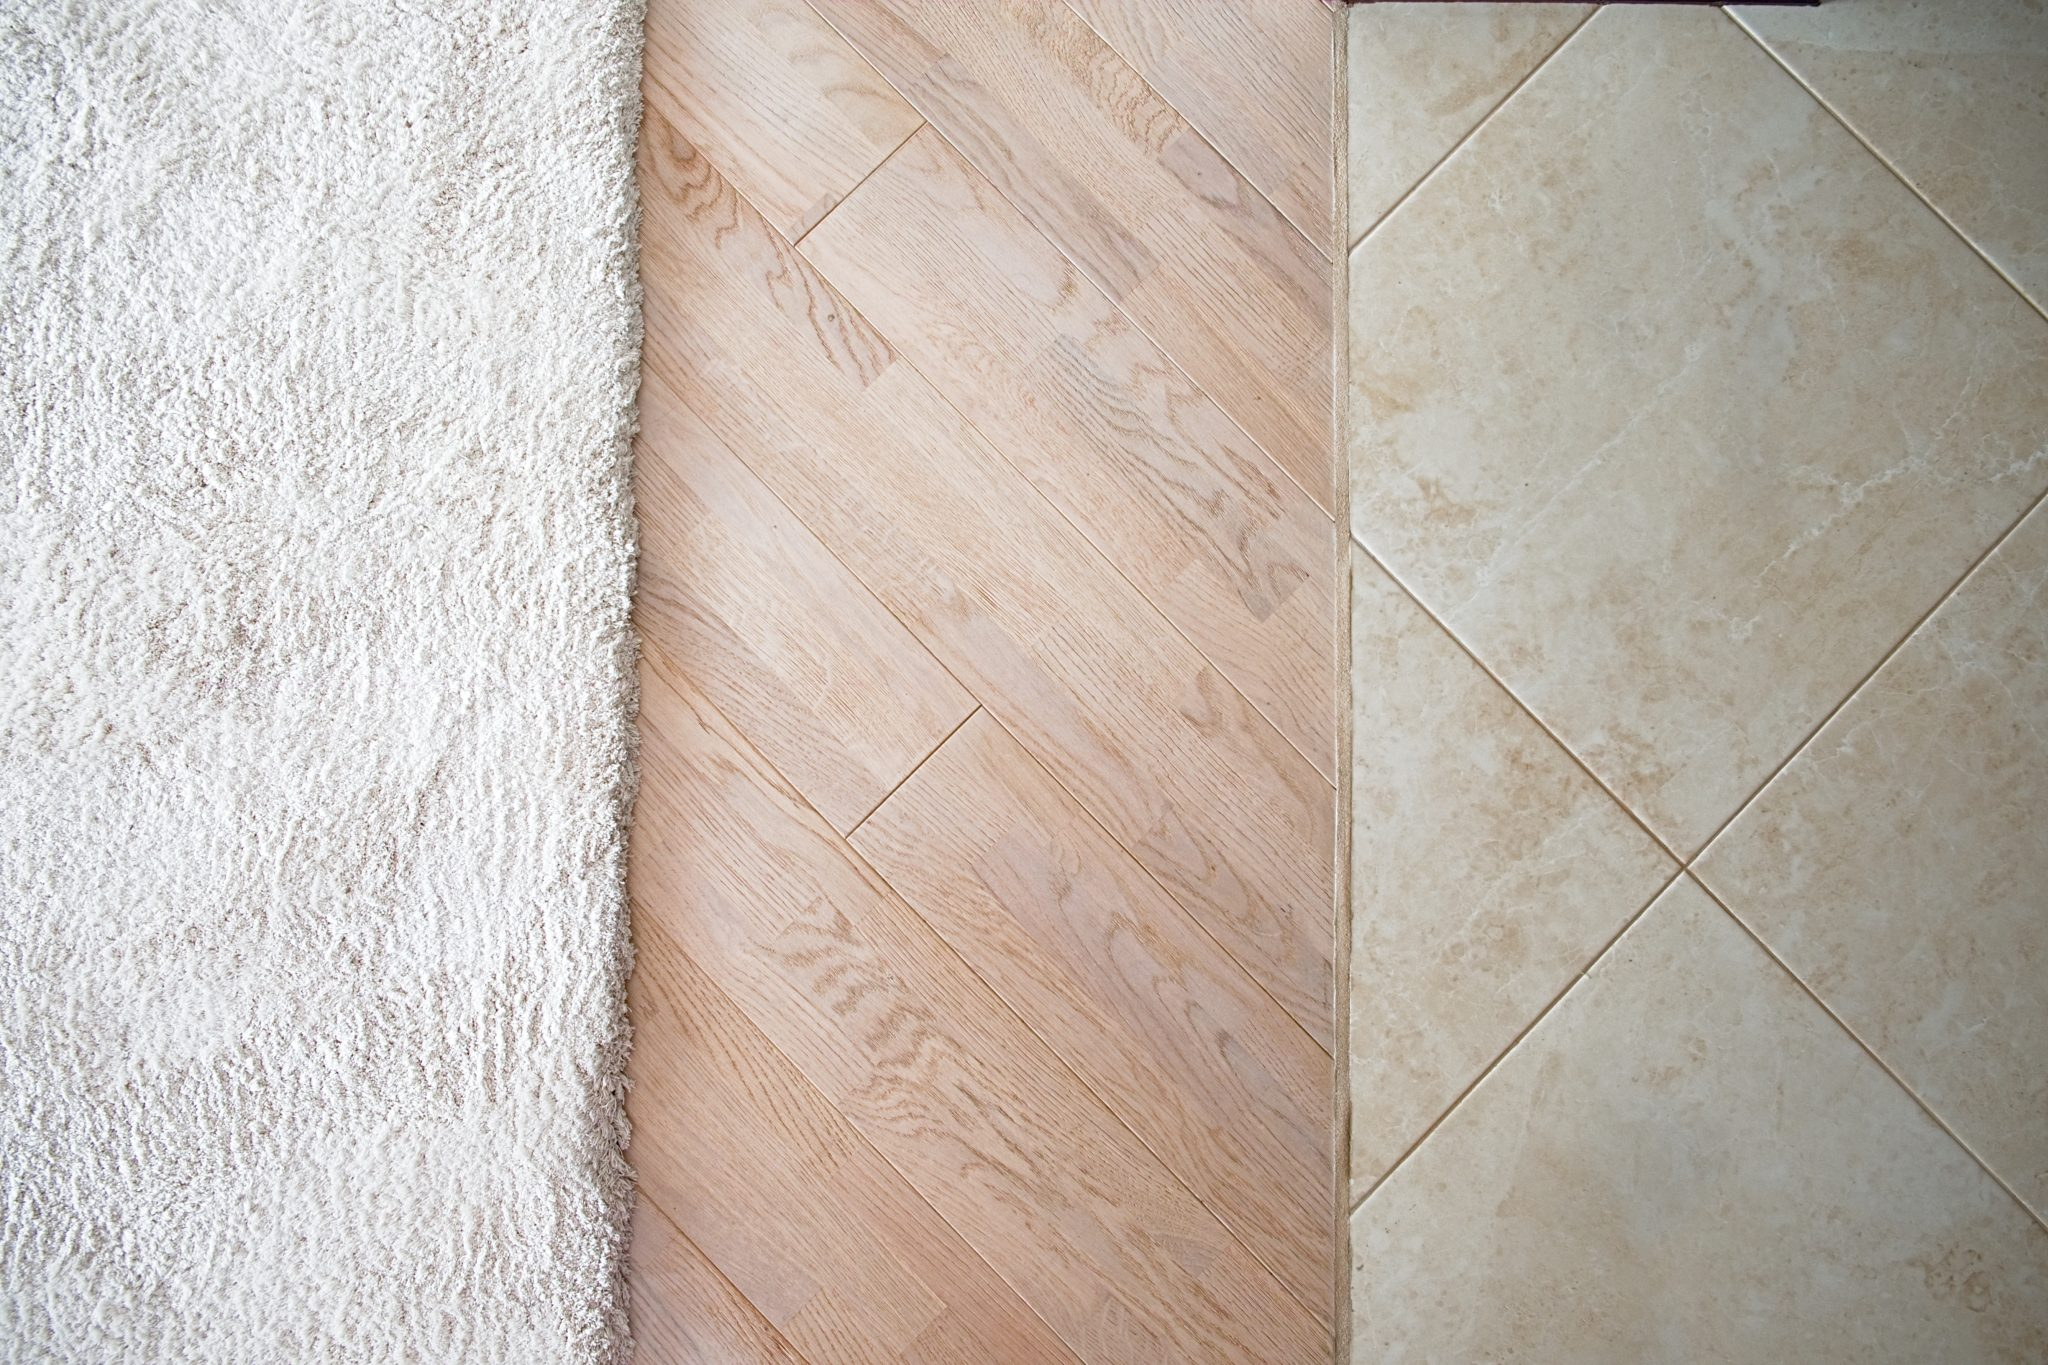 4 Factors In Choosing A Flooring Material Wood V Tile V